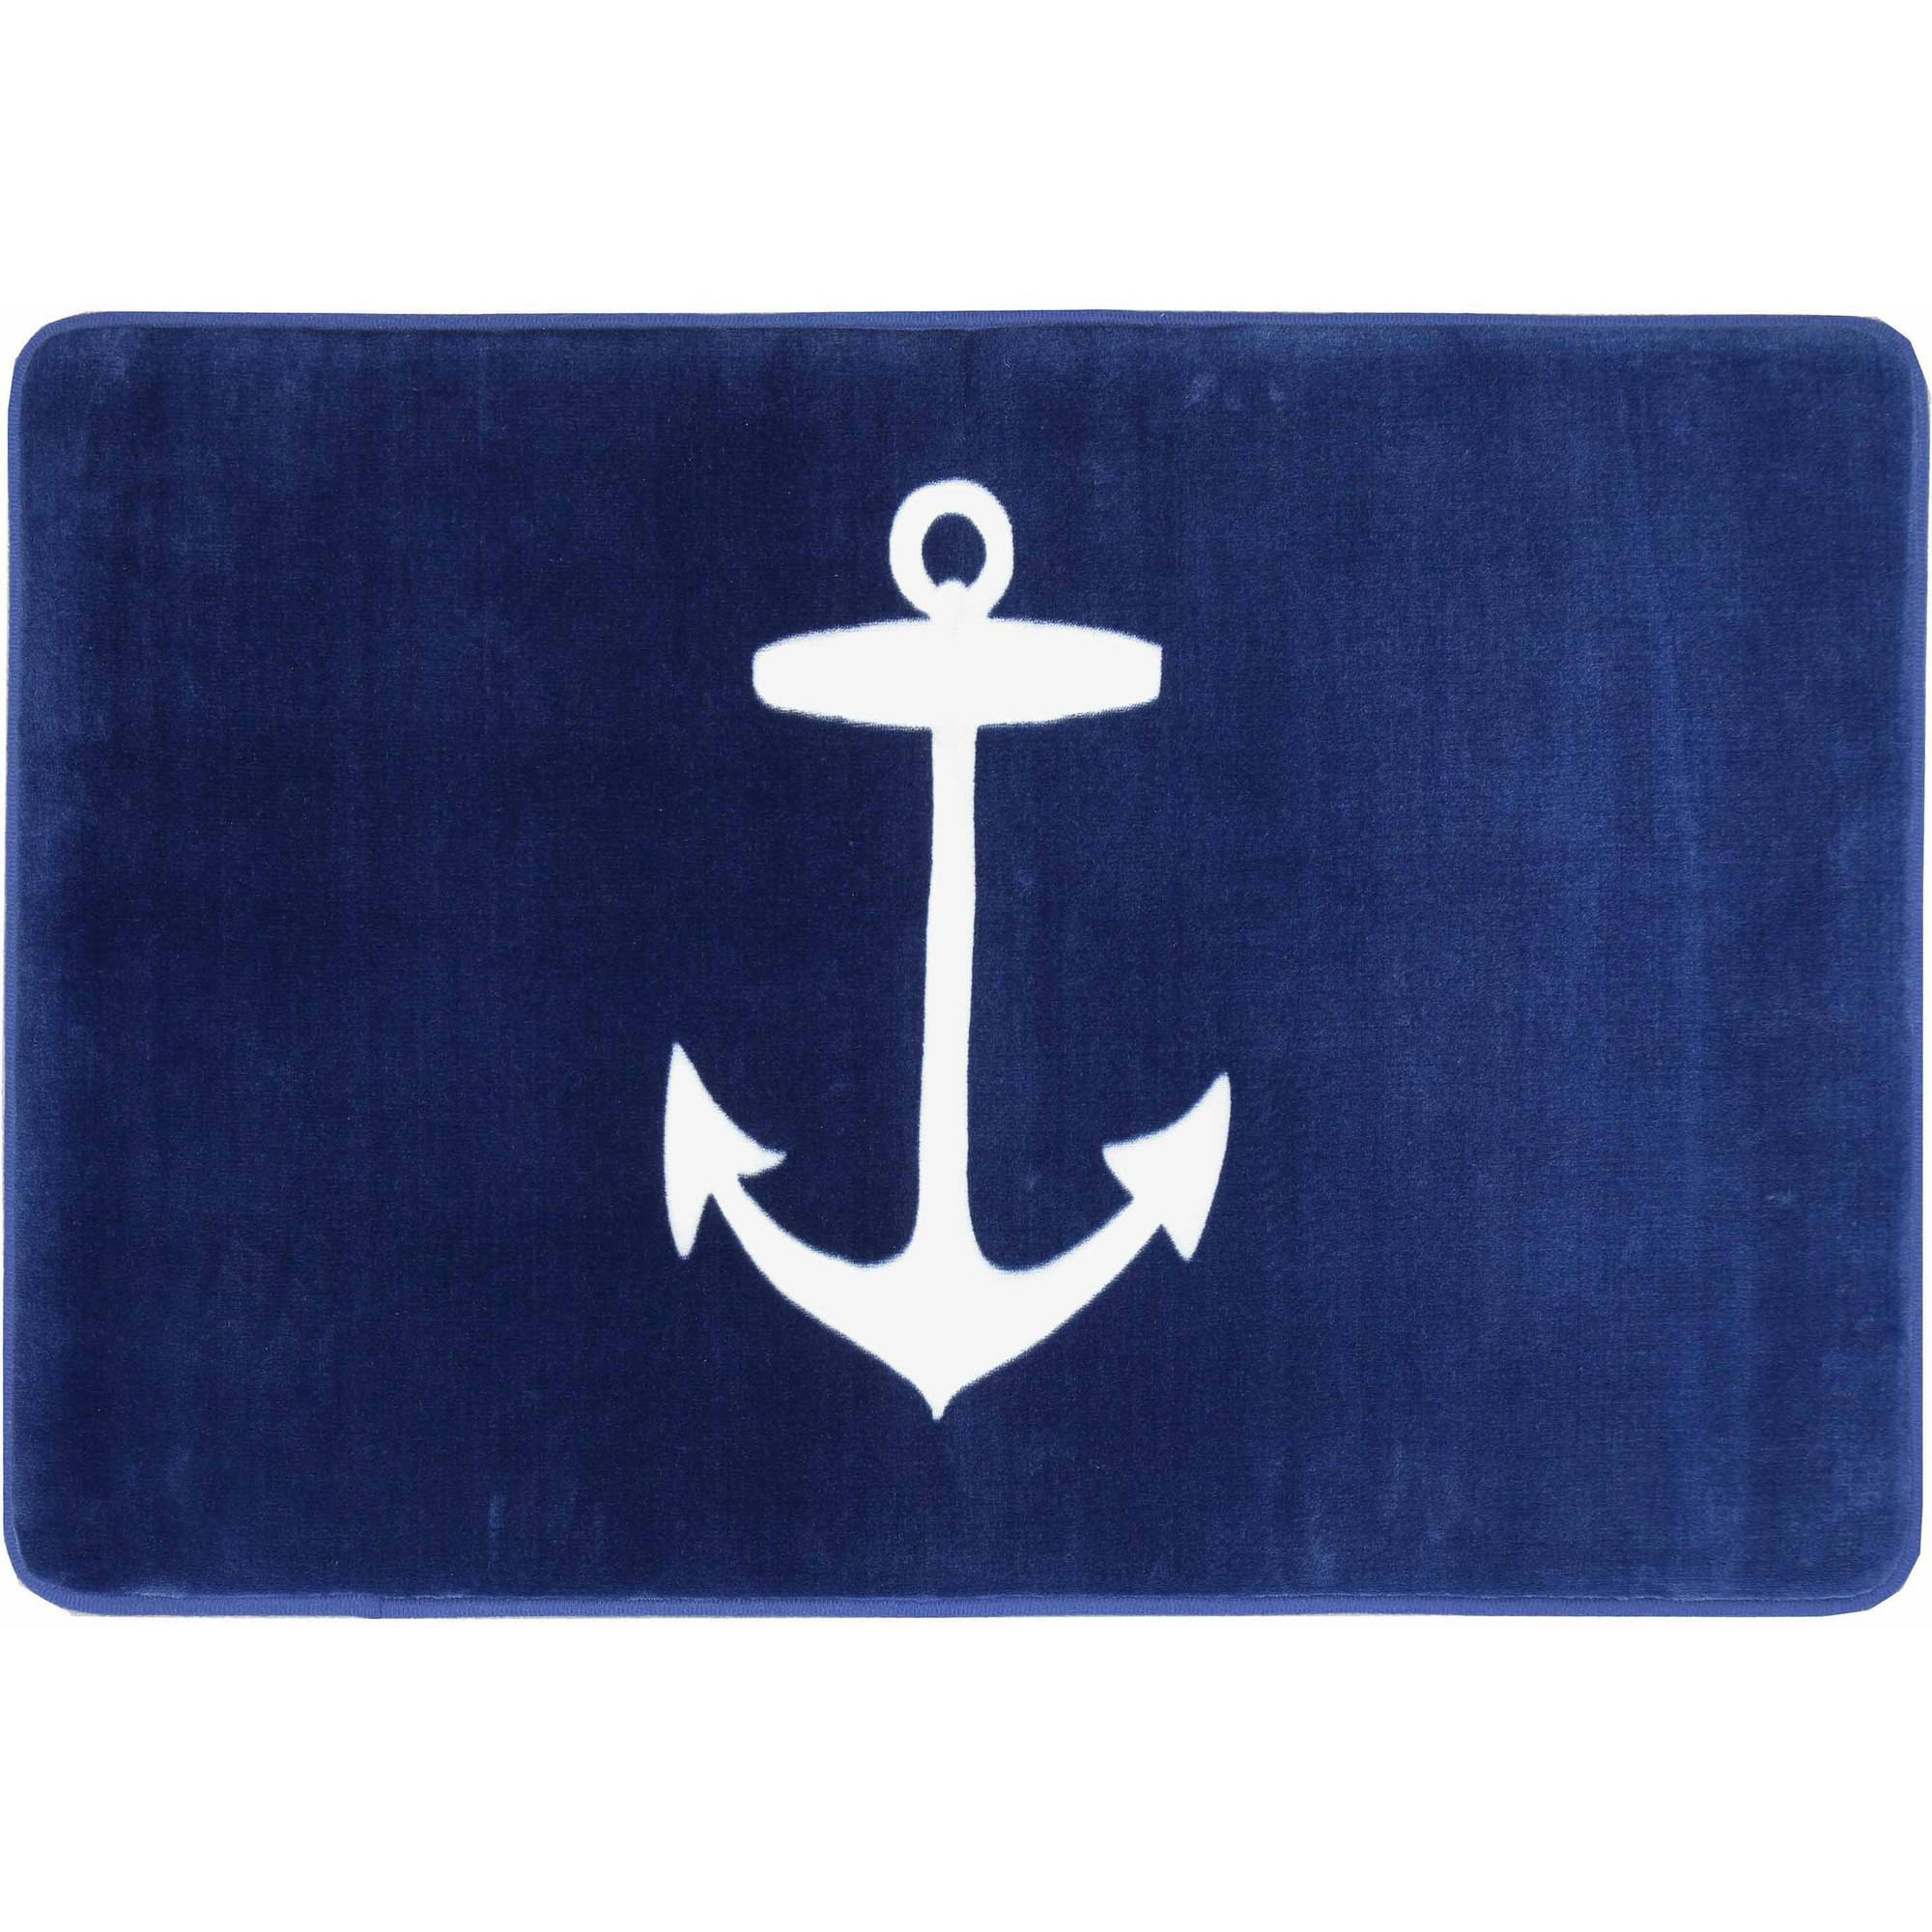 Better Homes and Gardens Nautical Memory Foam Bath Mat